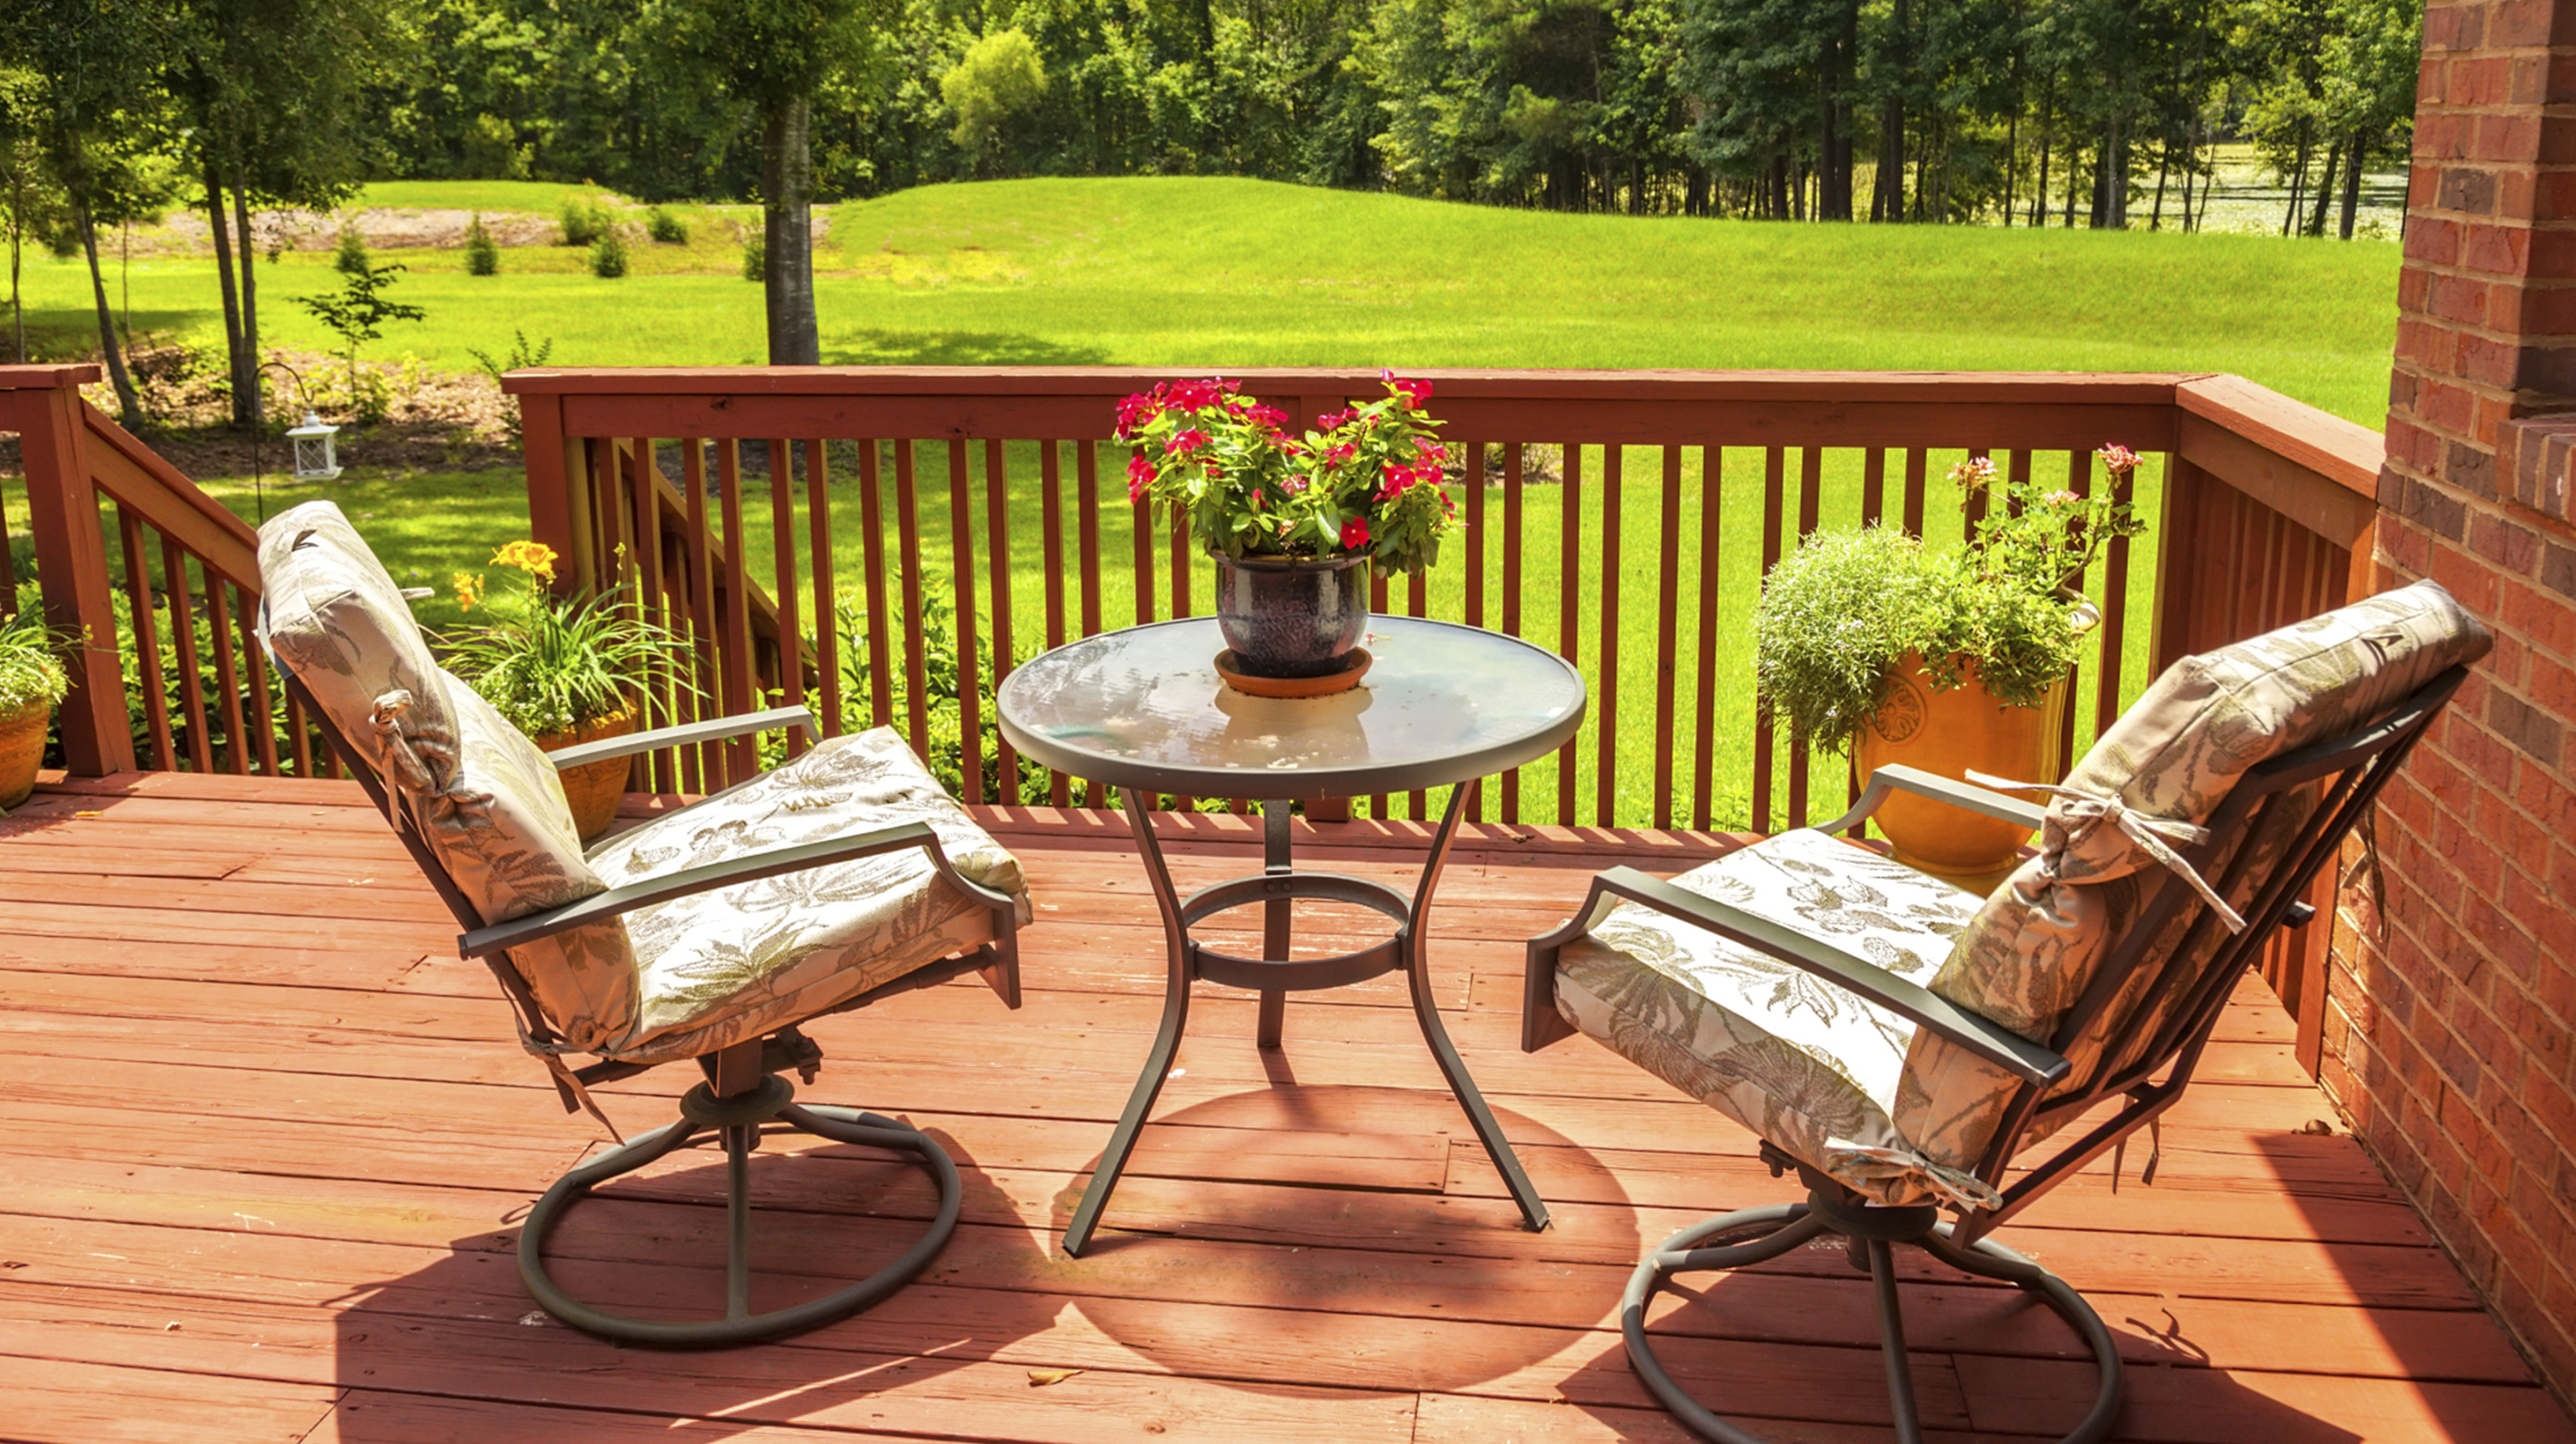 two chairs and table on decking overlooking lawn